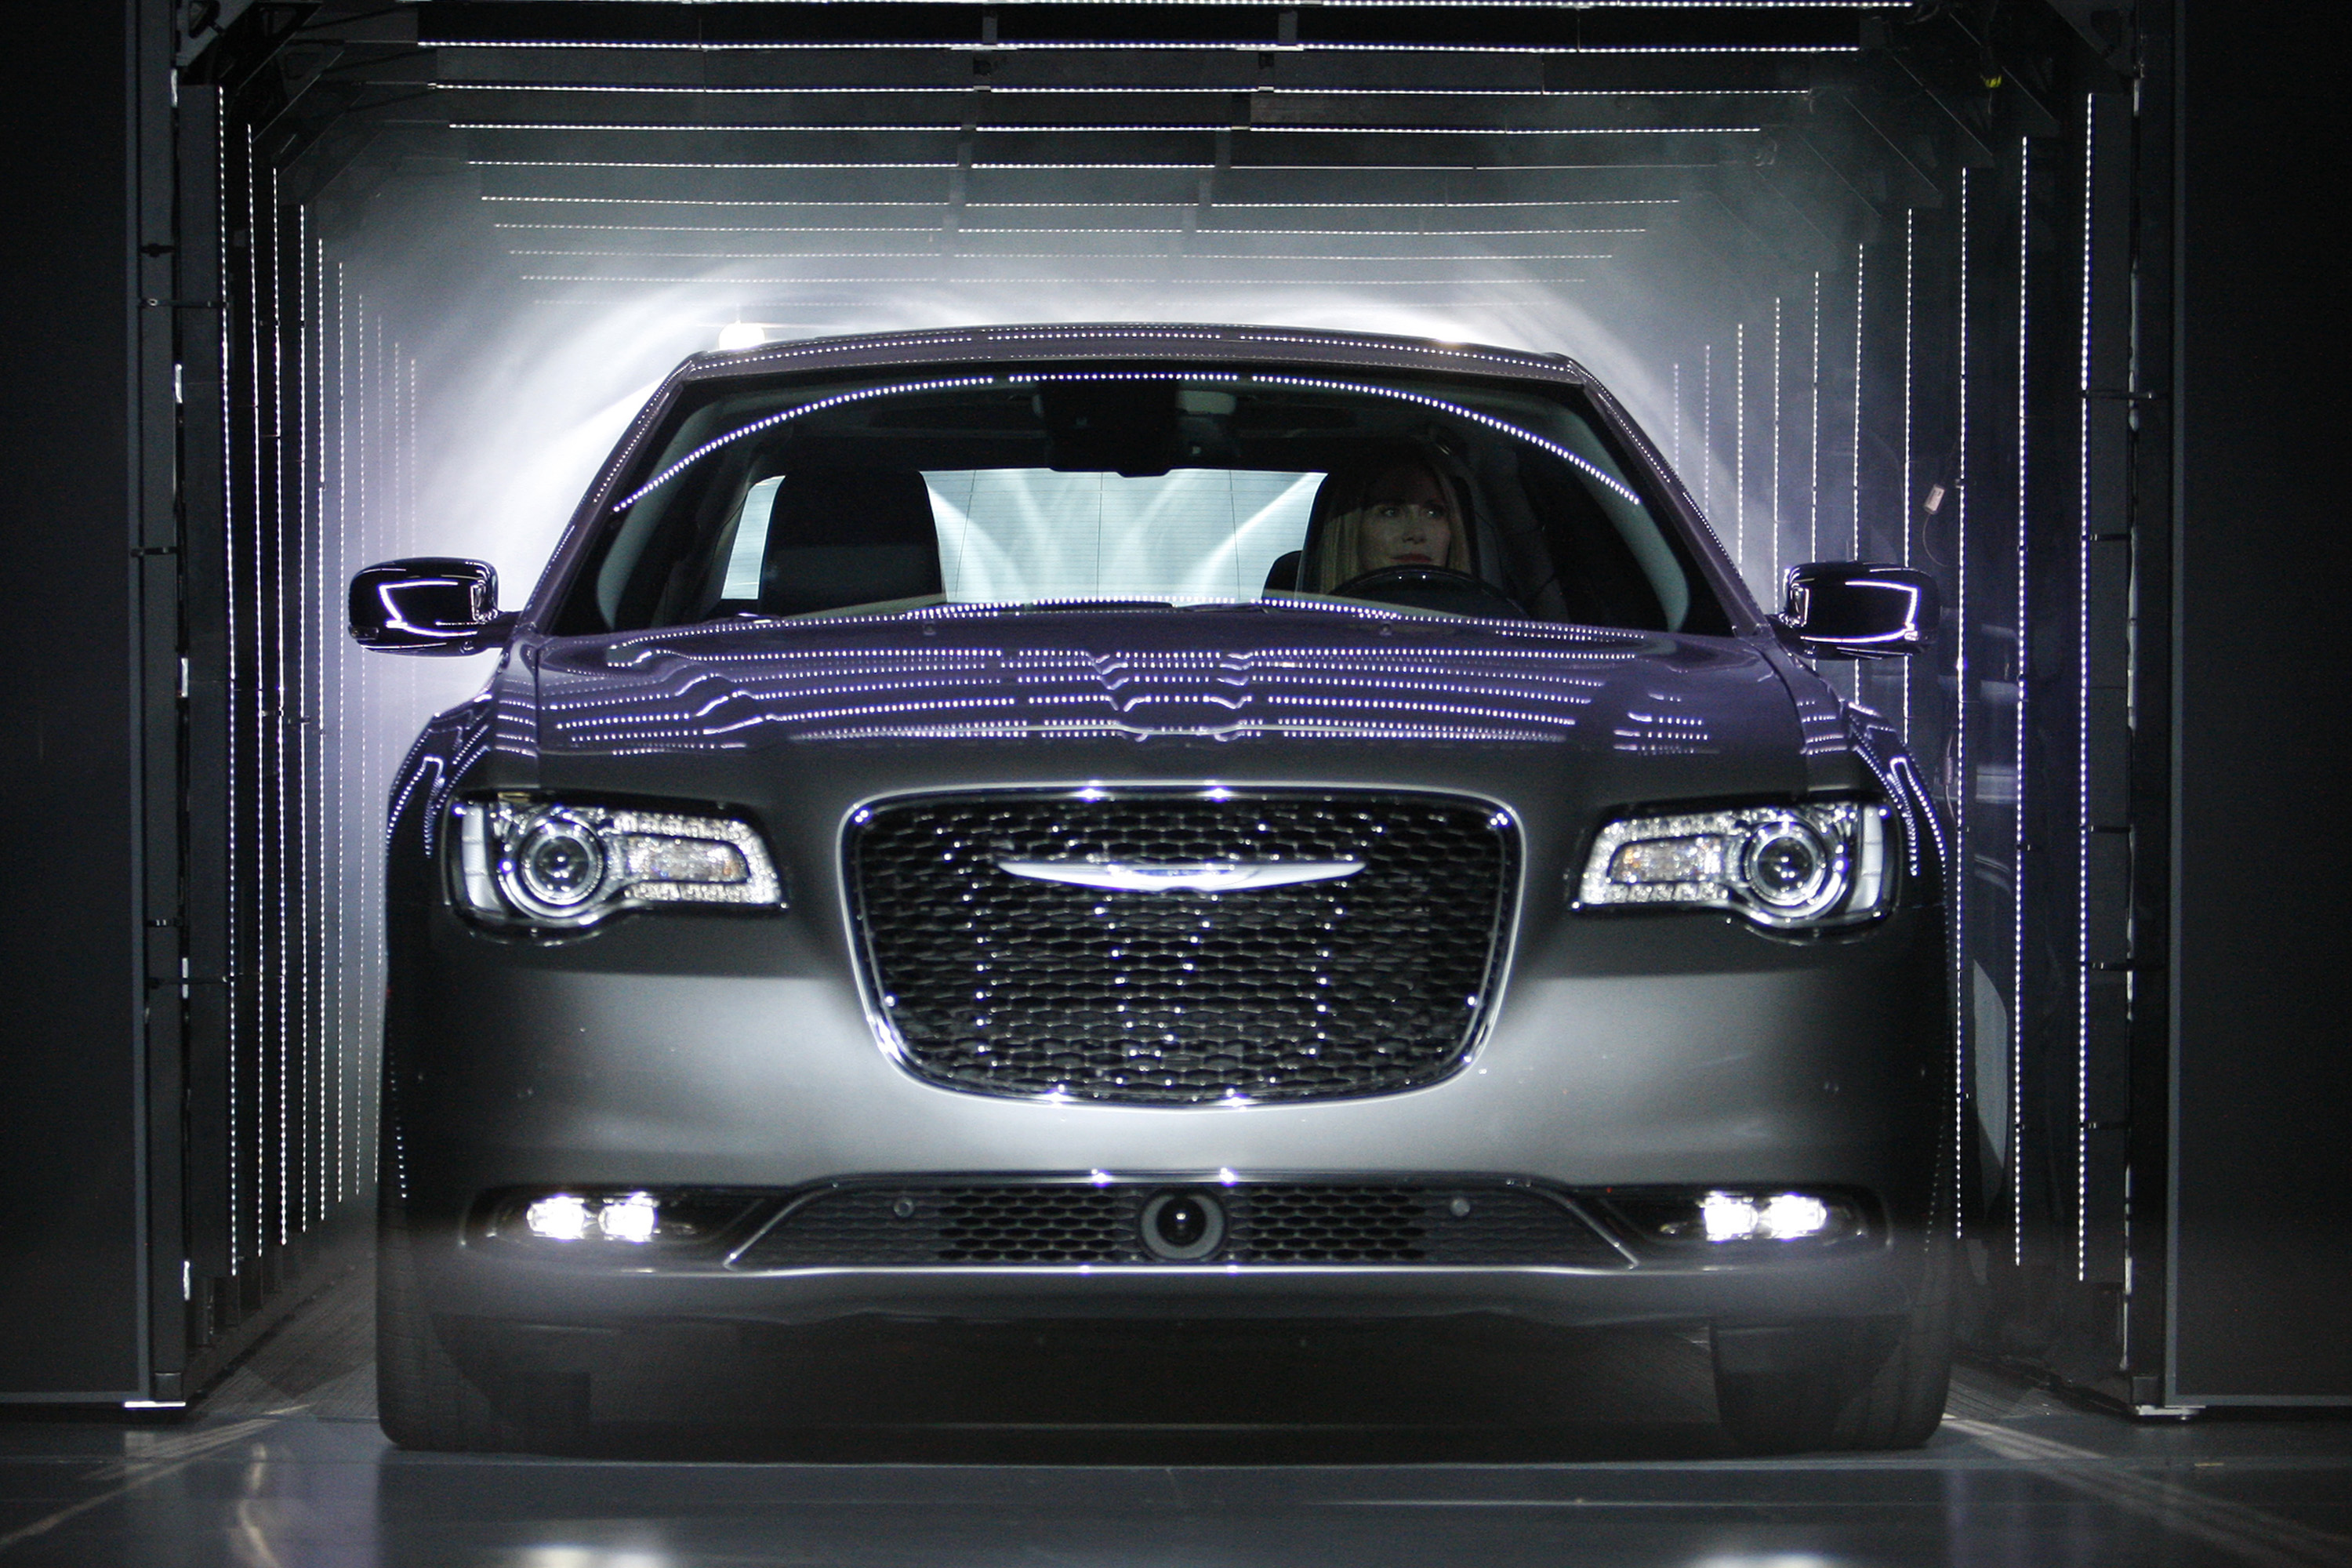 Chrysler recalls 1.4 million cars at risk of being remotely hijacked